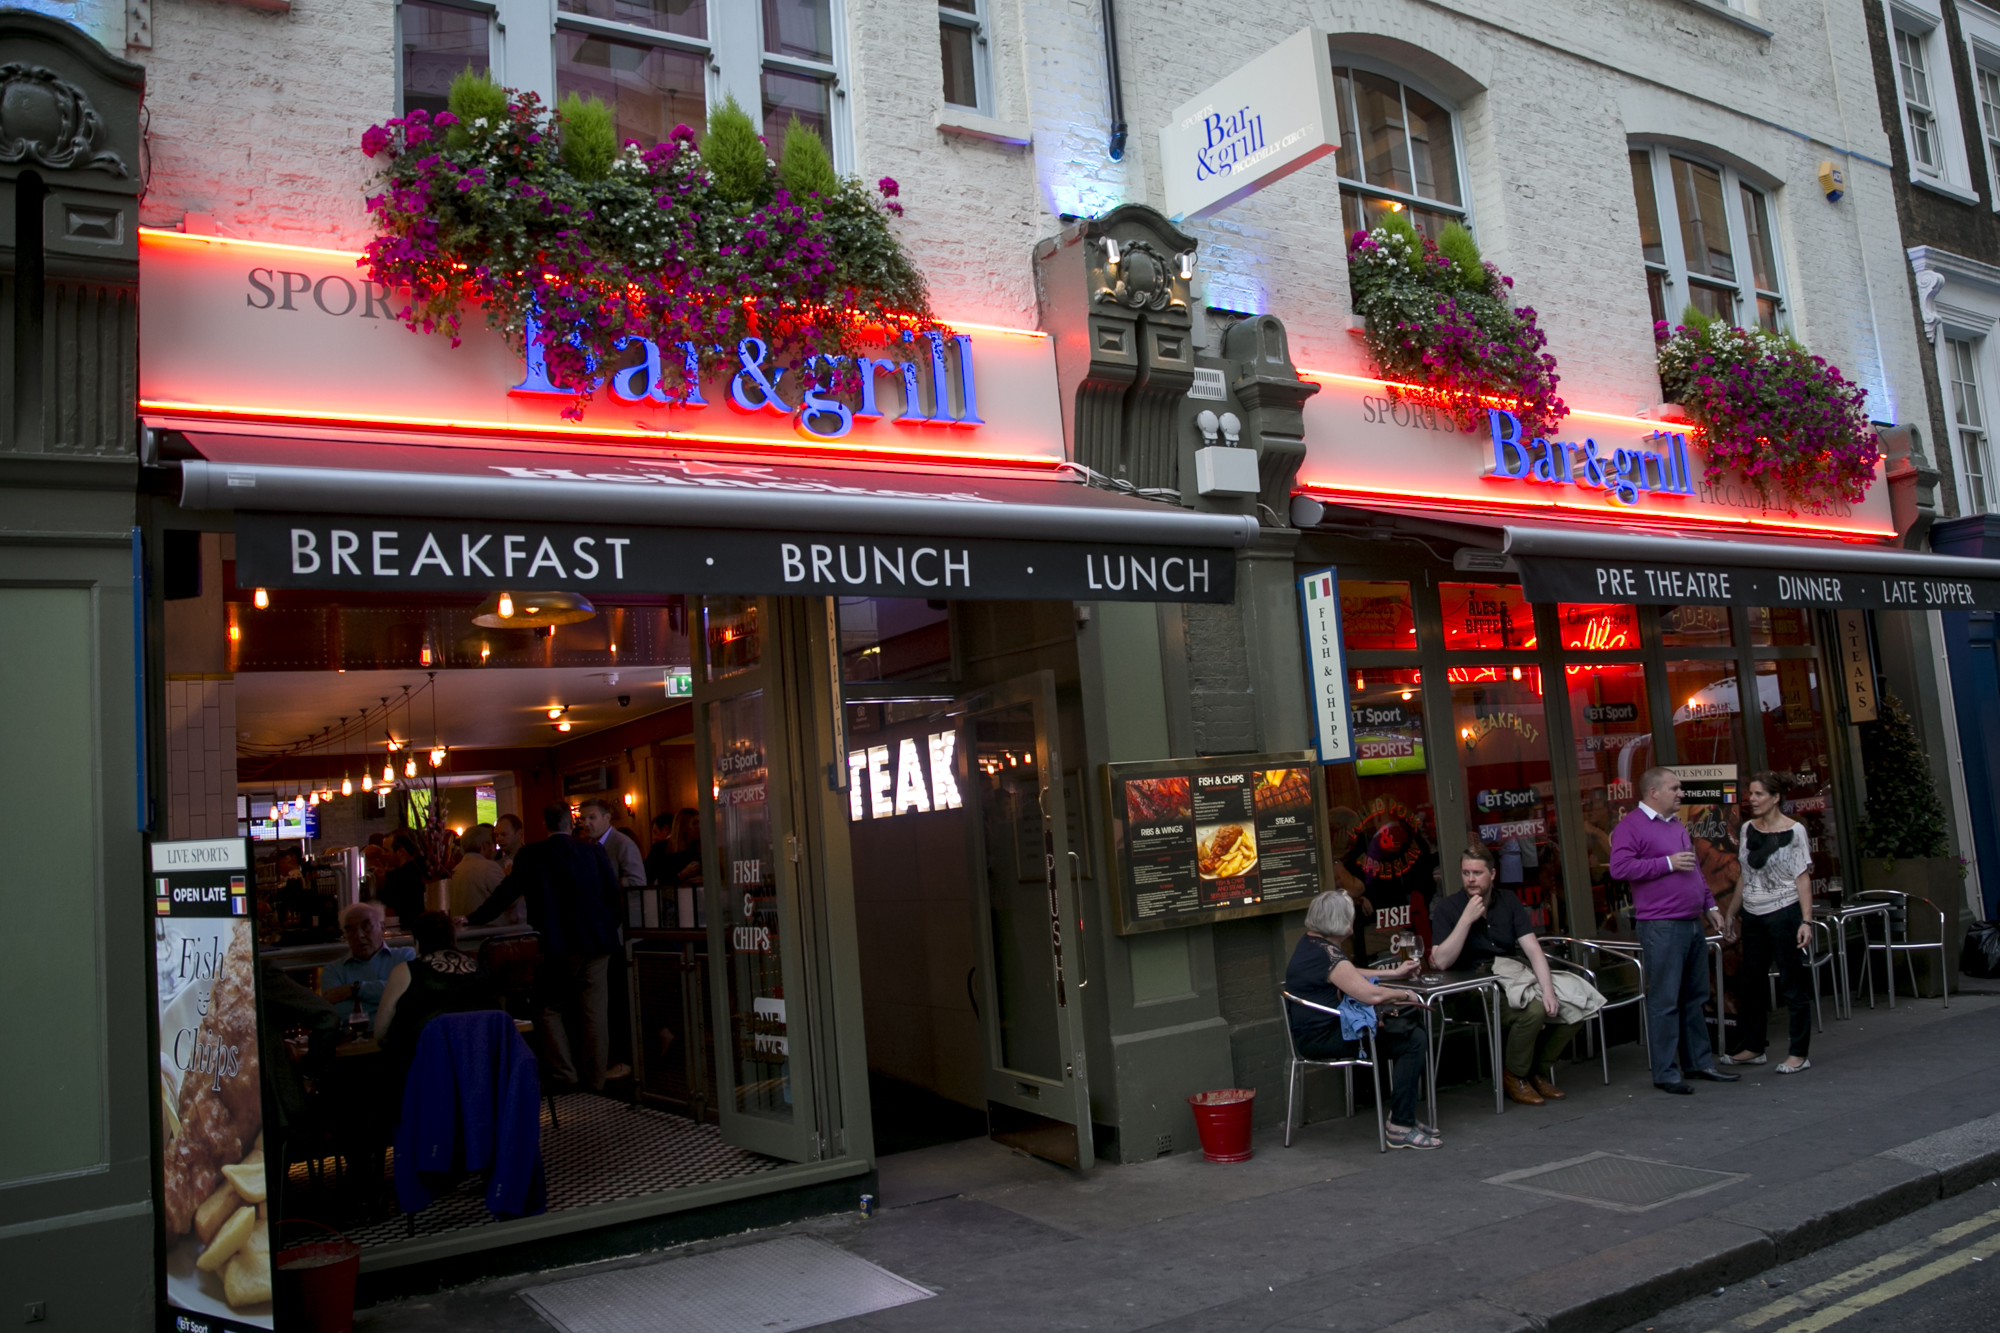 Reserve a table at Sports Bar & Grill - Piccadilly Circus